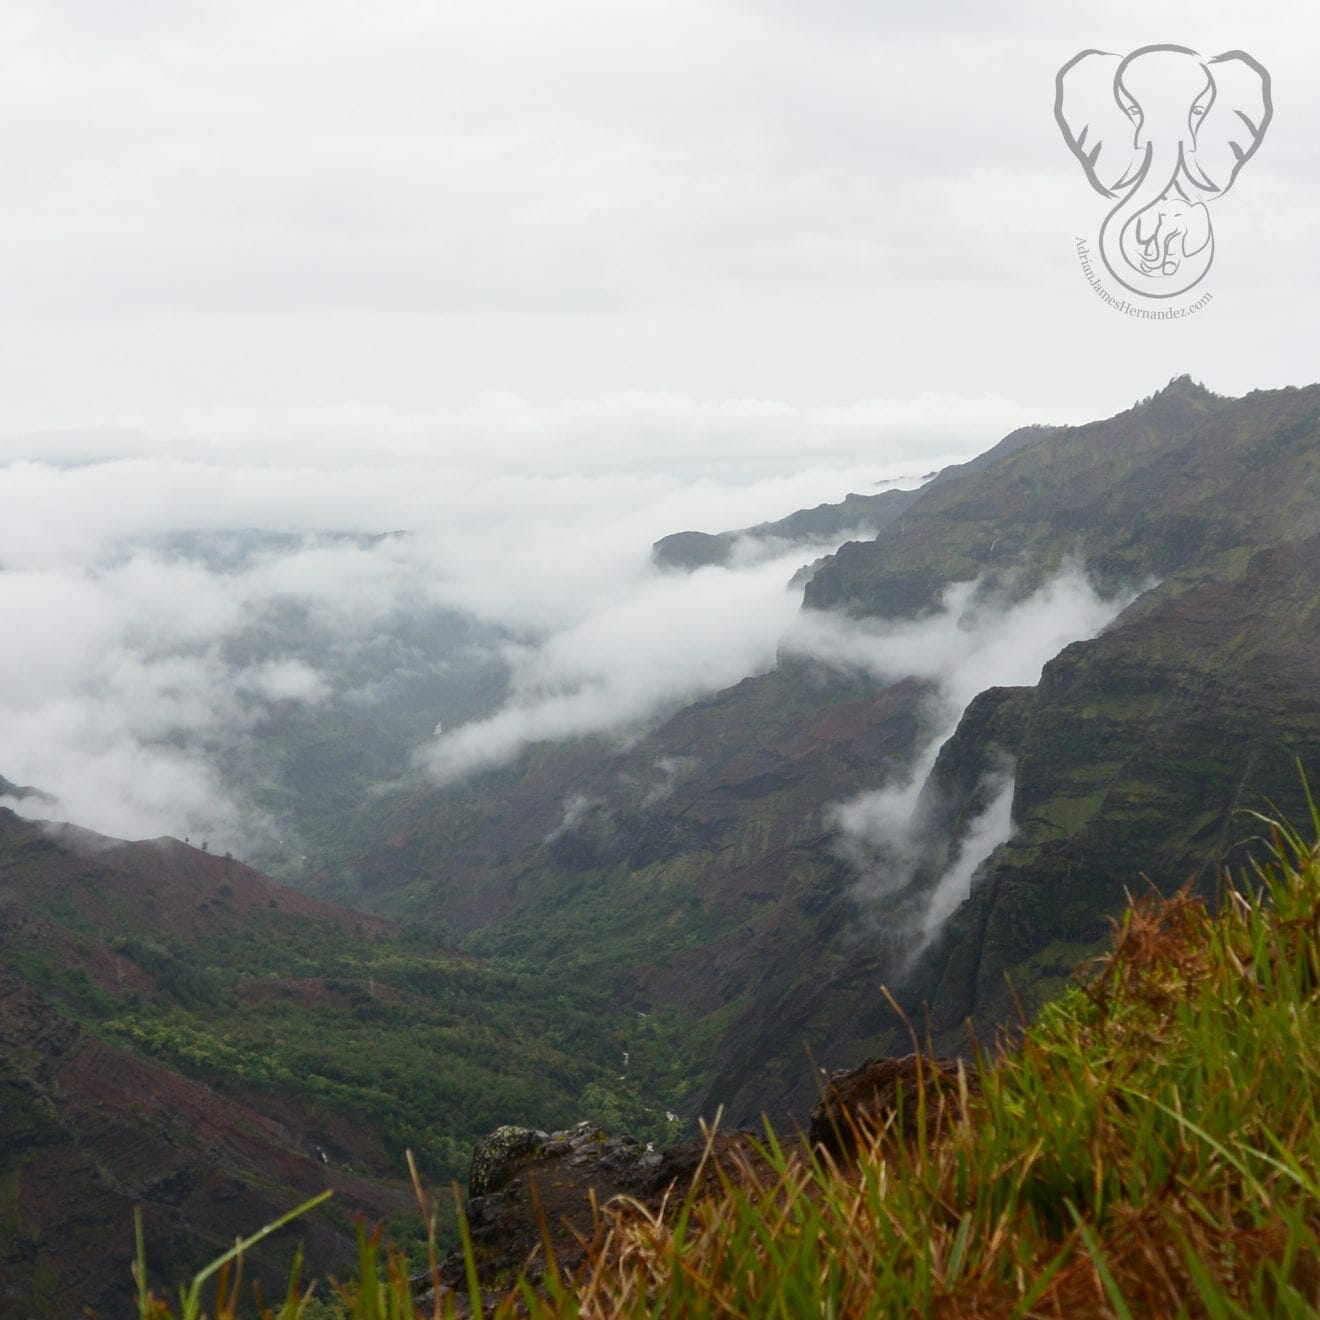 View from the top of Waimea Canyon, mountains covered in fog, Kaua'i, Hawai'i (Luna Kai Photography)